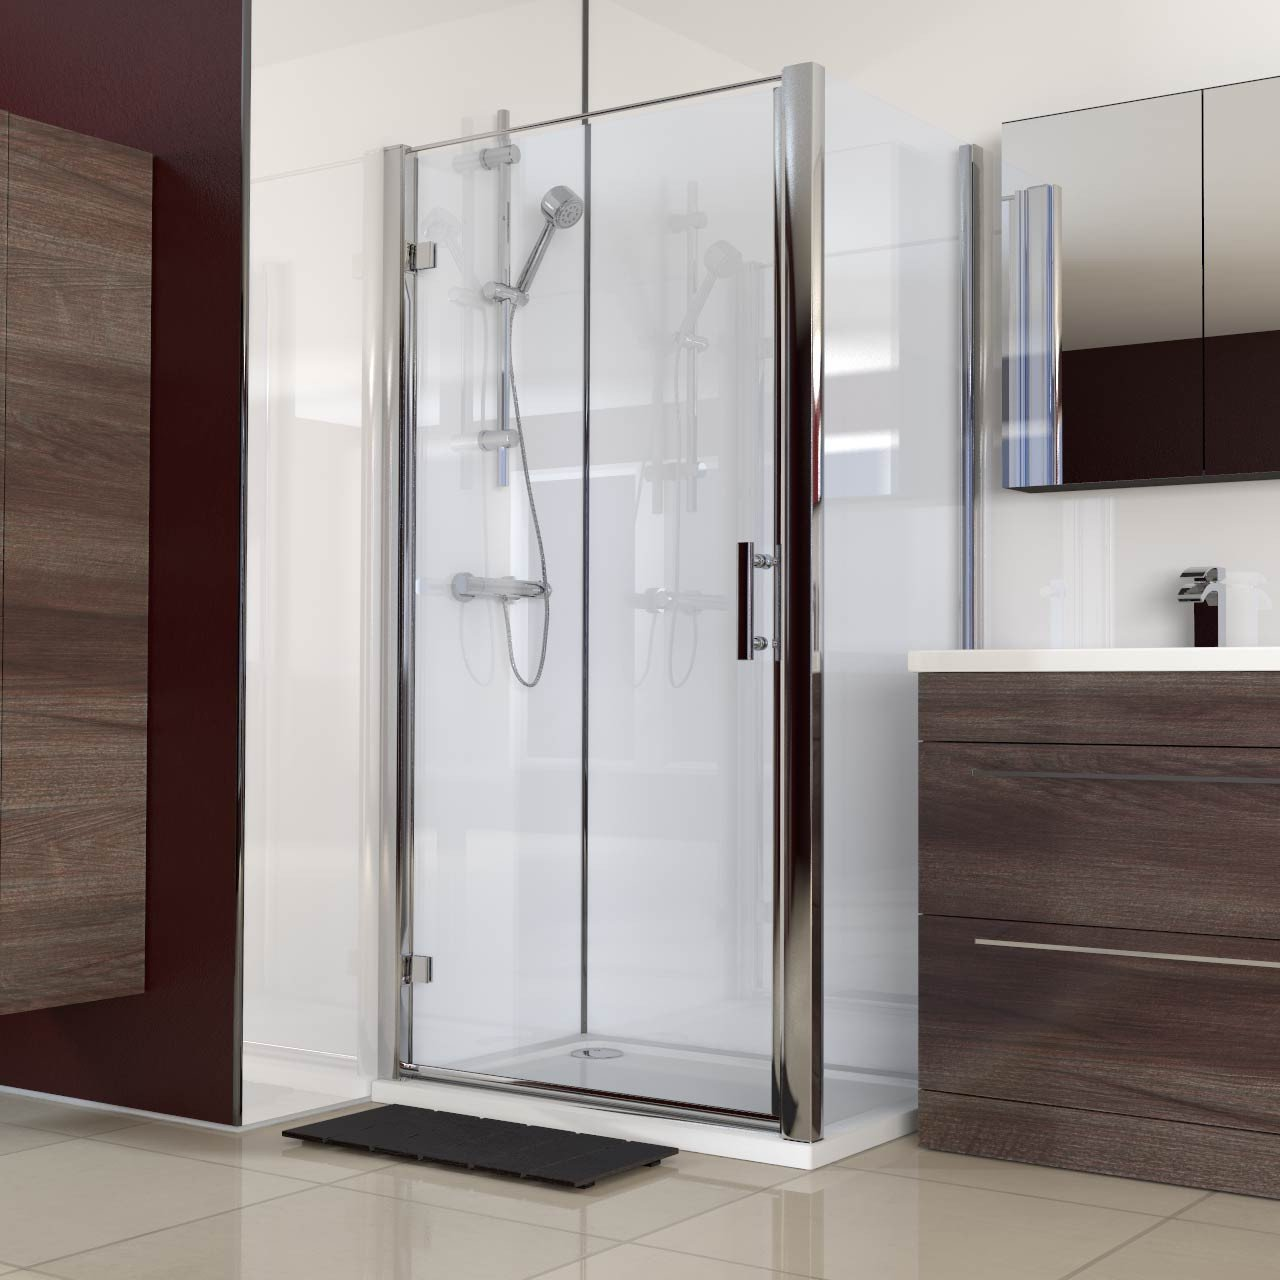 Series 6 1000mm x 700mm Hinged Door Shower Enclosure